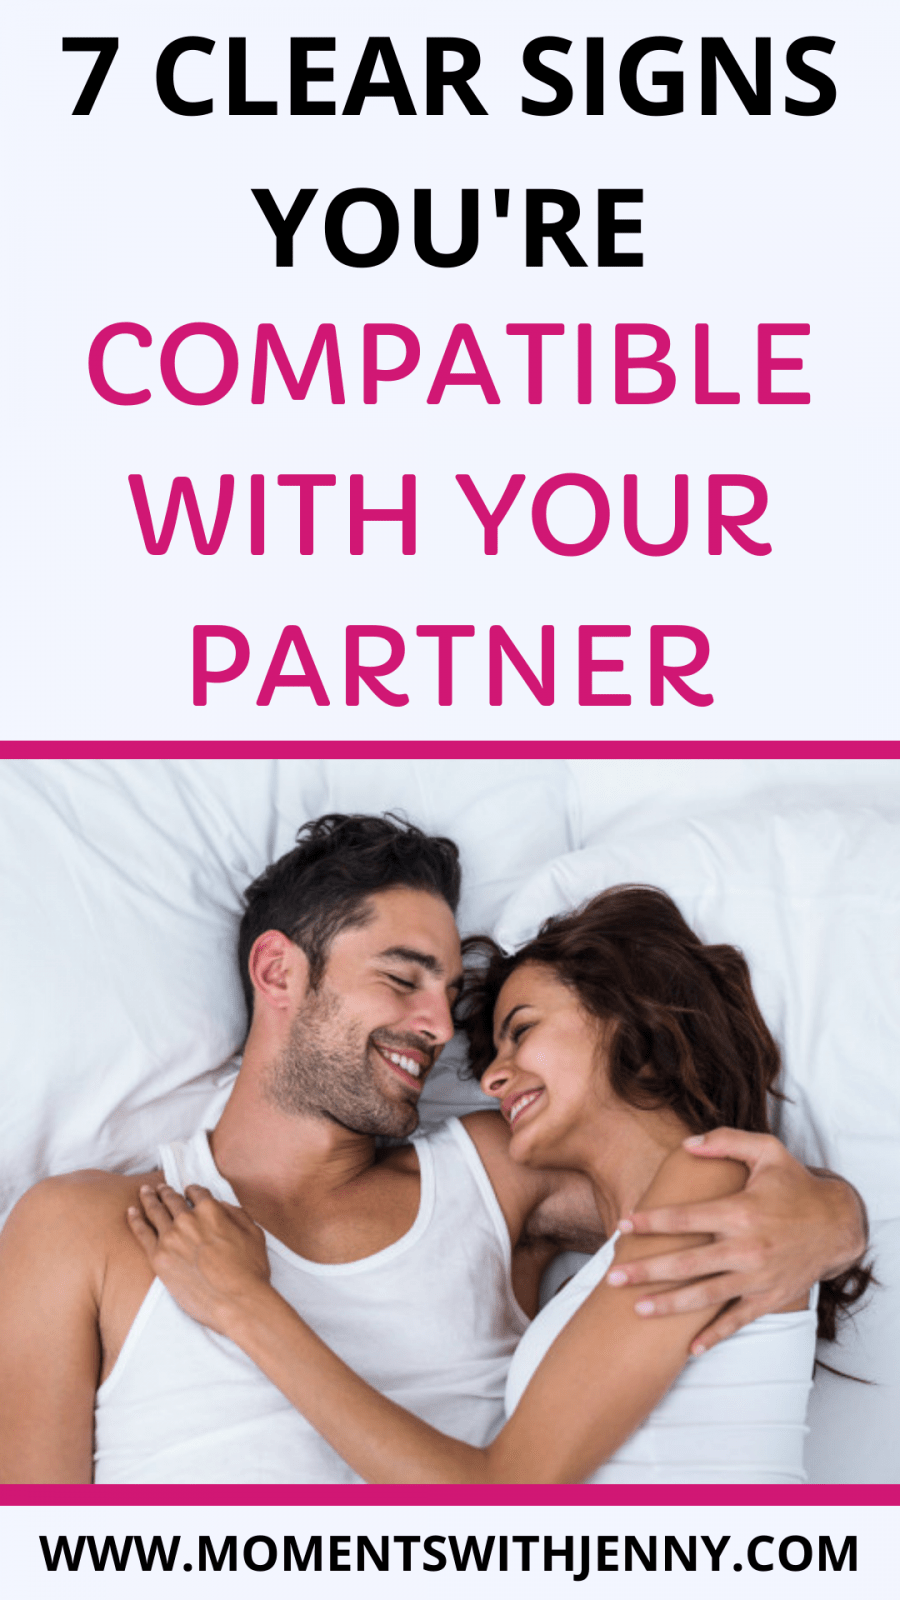 7 Clear Signs You're Compatible With Your Partner